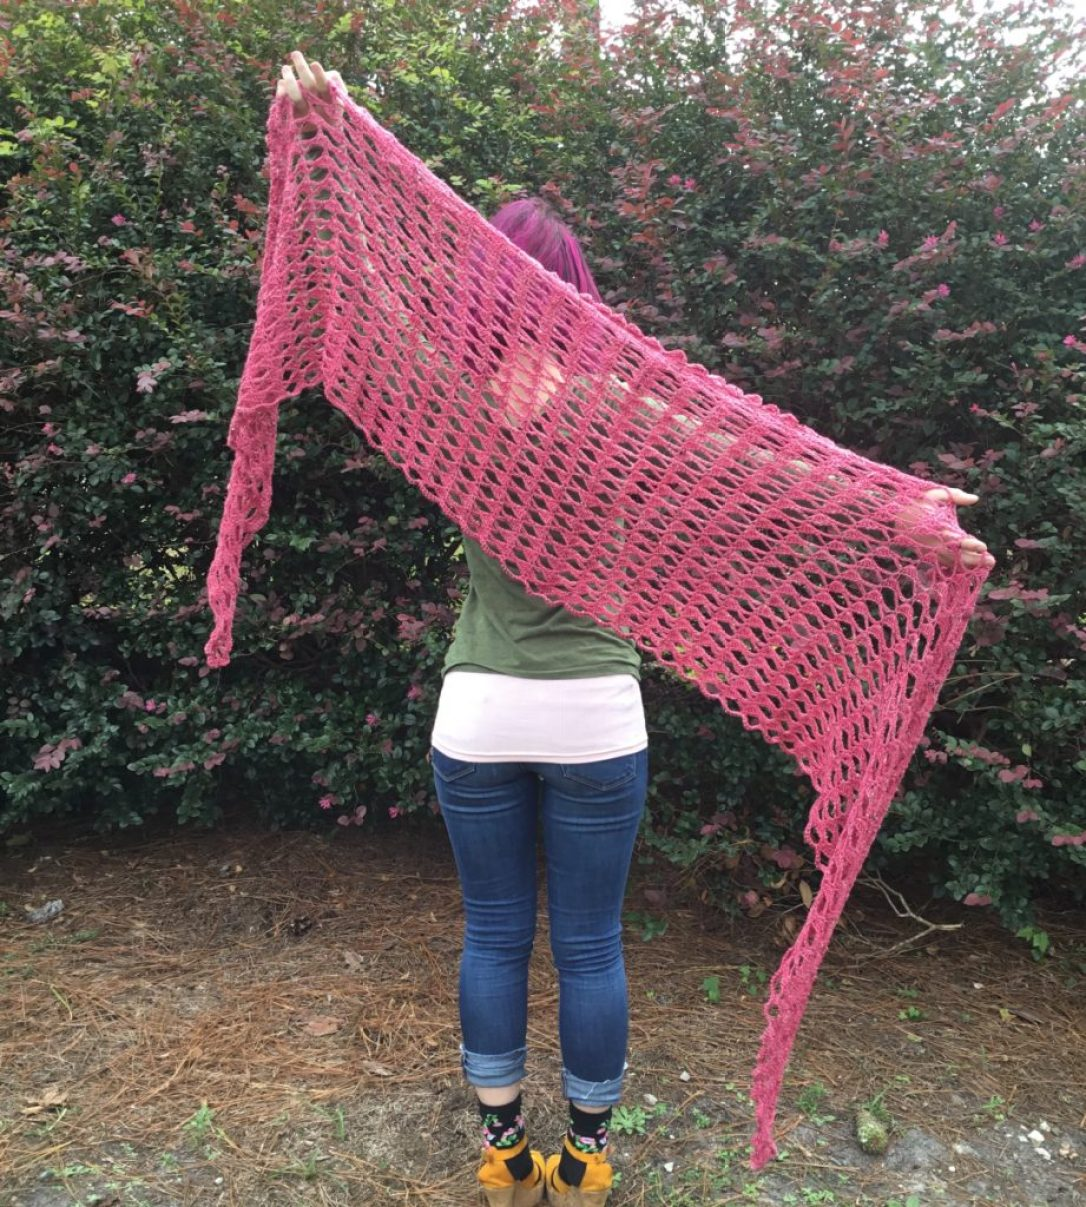 Sensible Shawl Crochet Pattern by Mary Beth Temple, $6, available at Ravelry